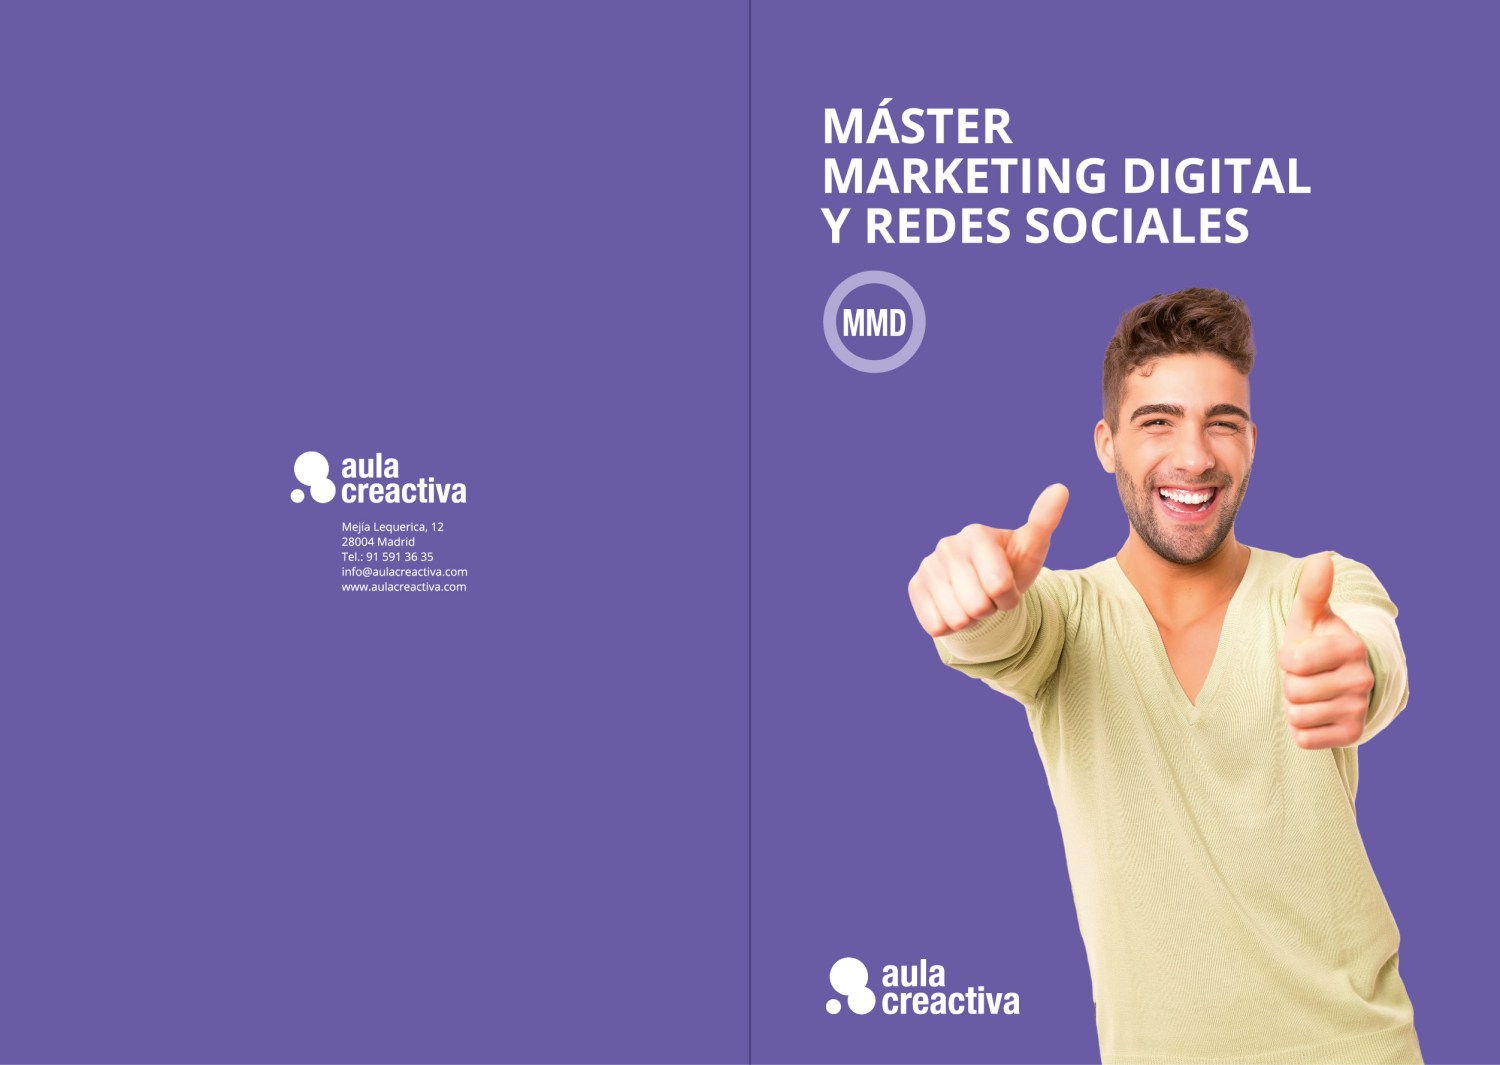 diptico-folleto-master-marketing-digital